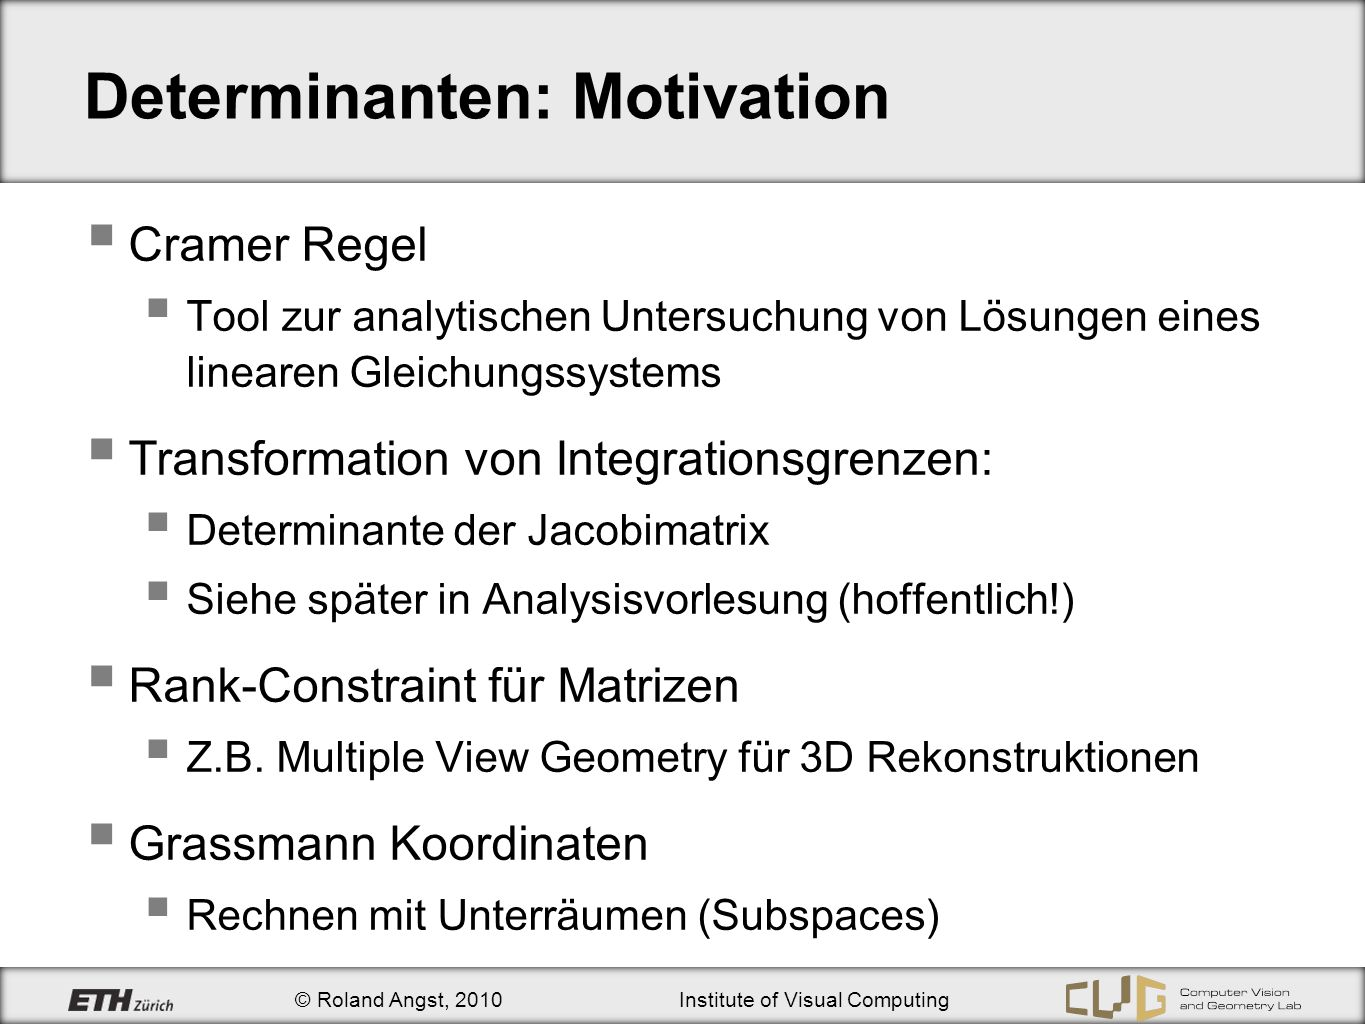 Determinanten: Motivation